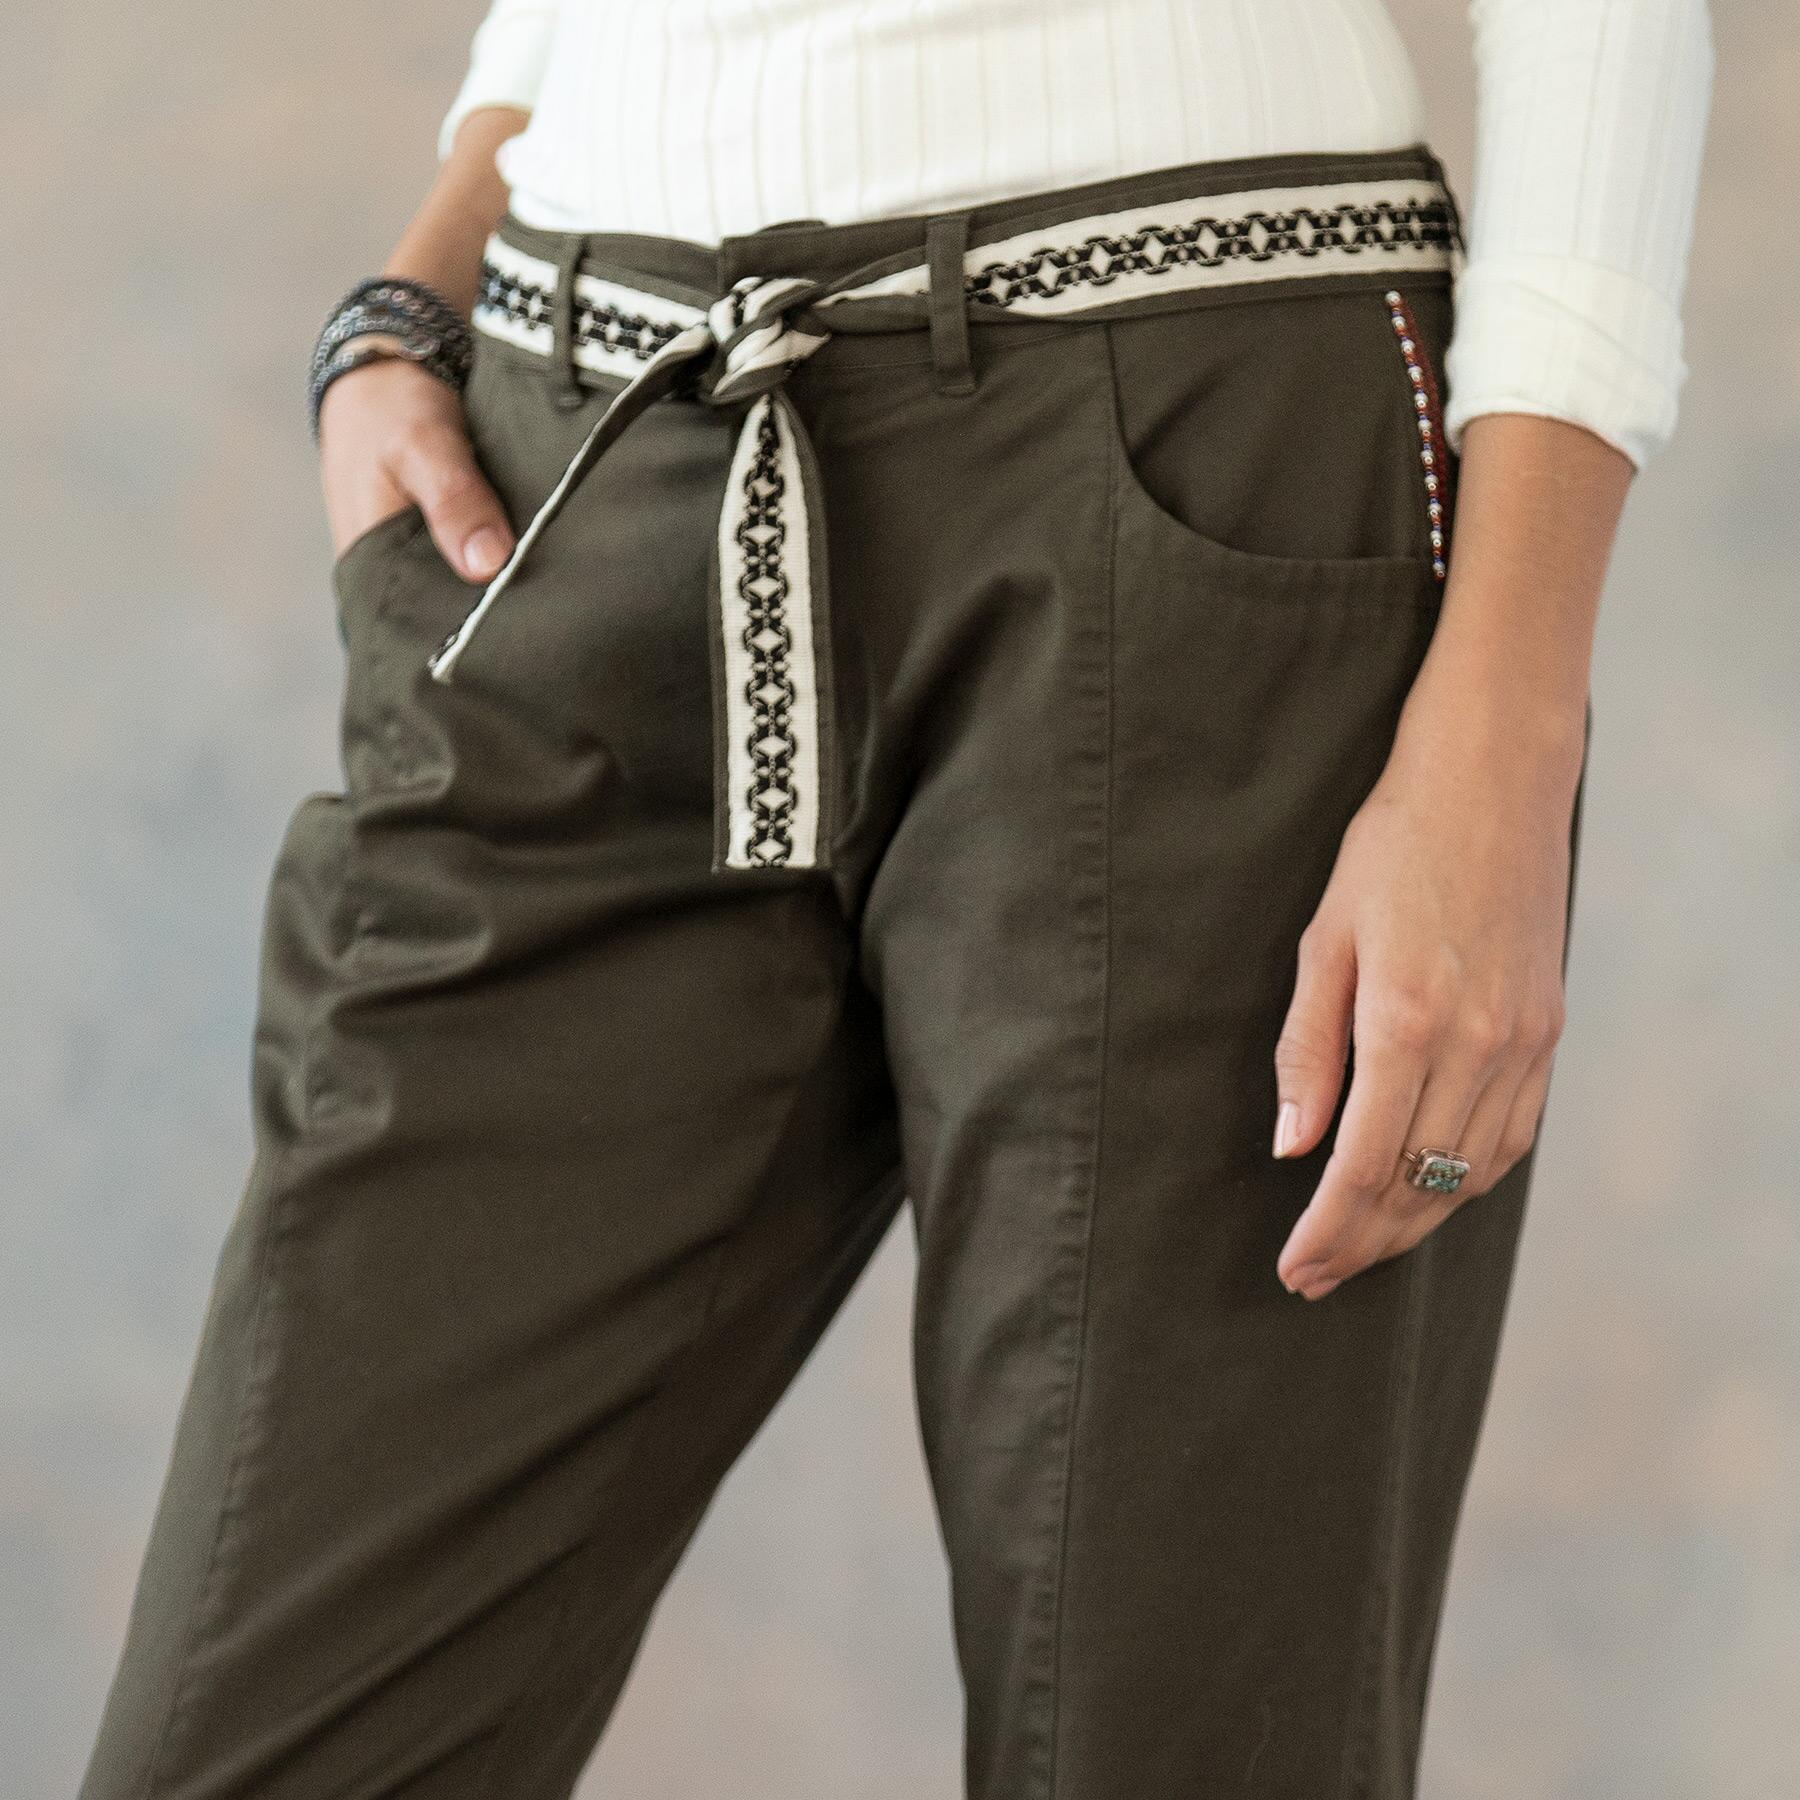 ANKLE DETAIL LACE UP PANTS: View 6